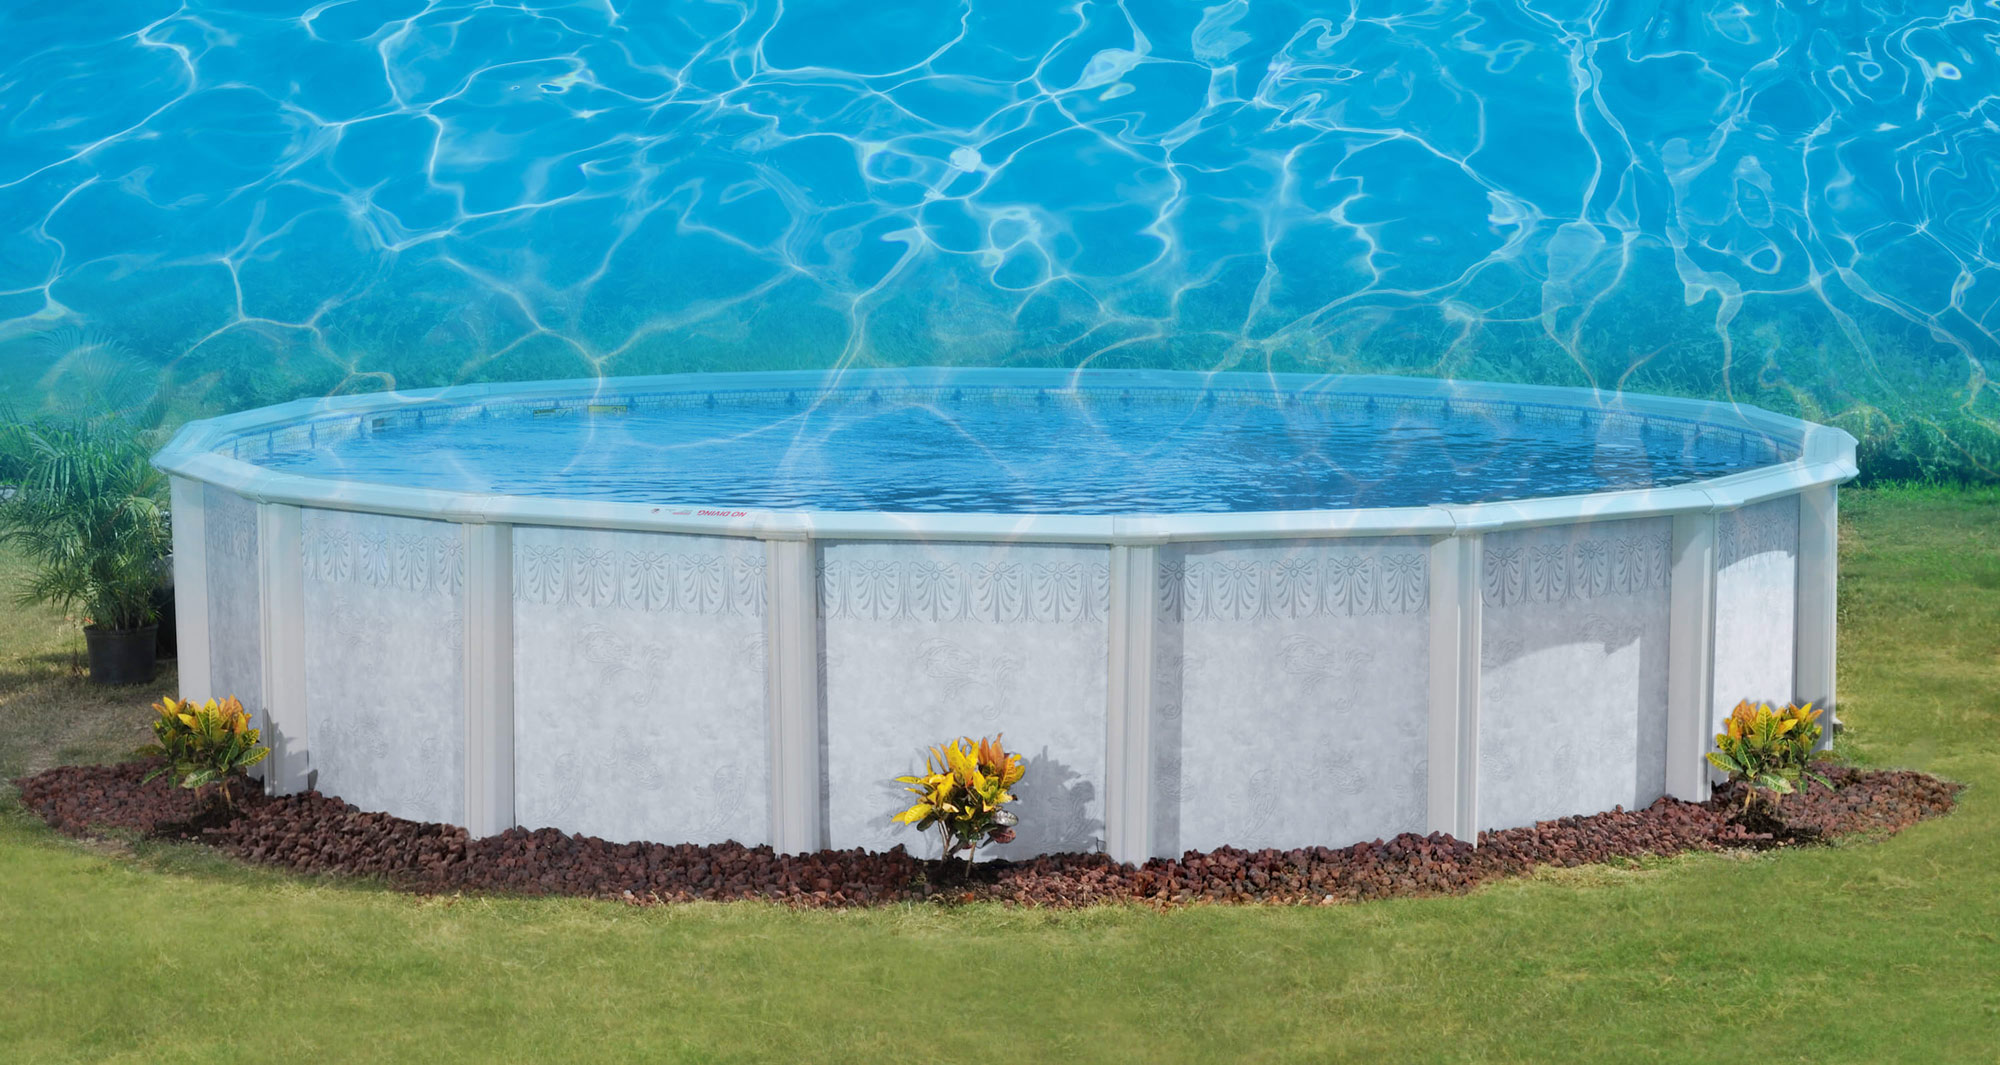 This is a photo a pool with a water overlay on top of it.